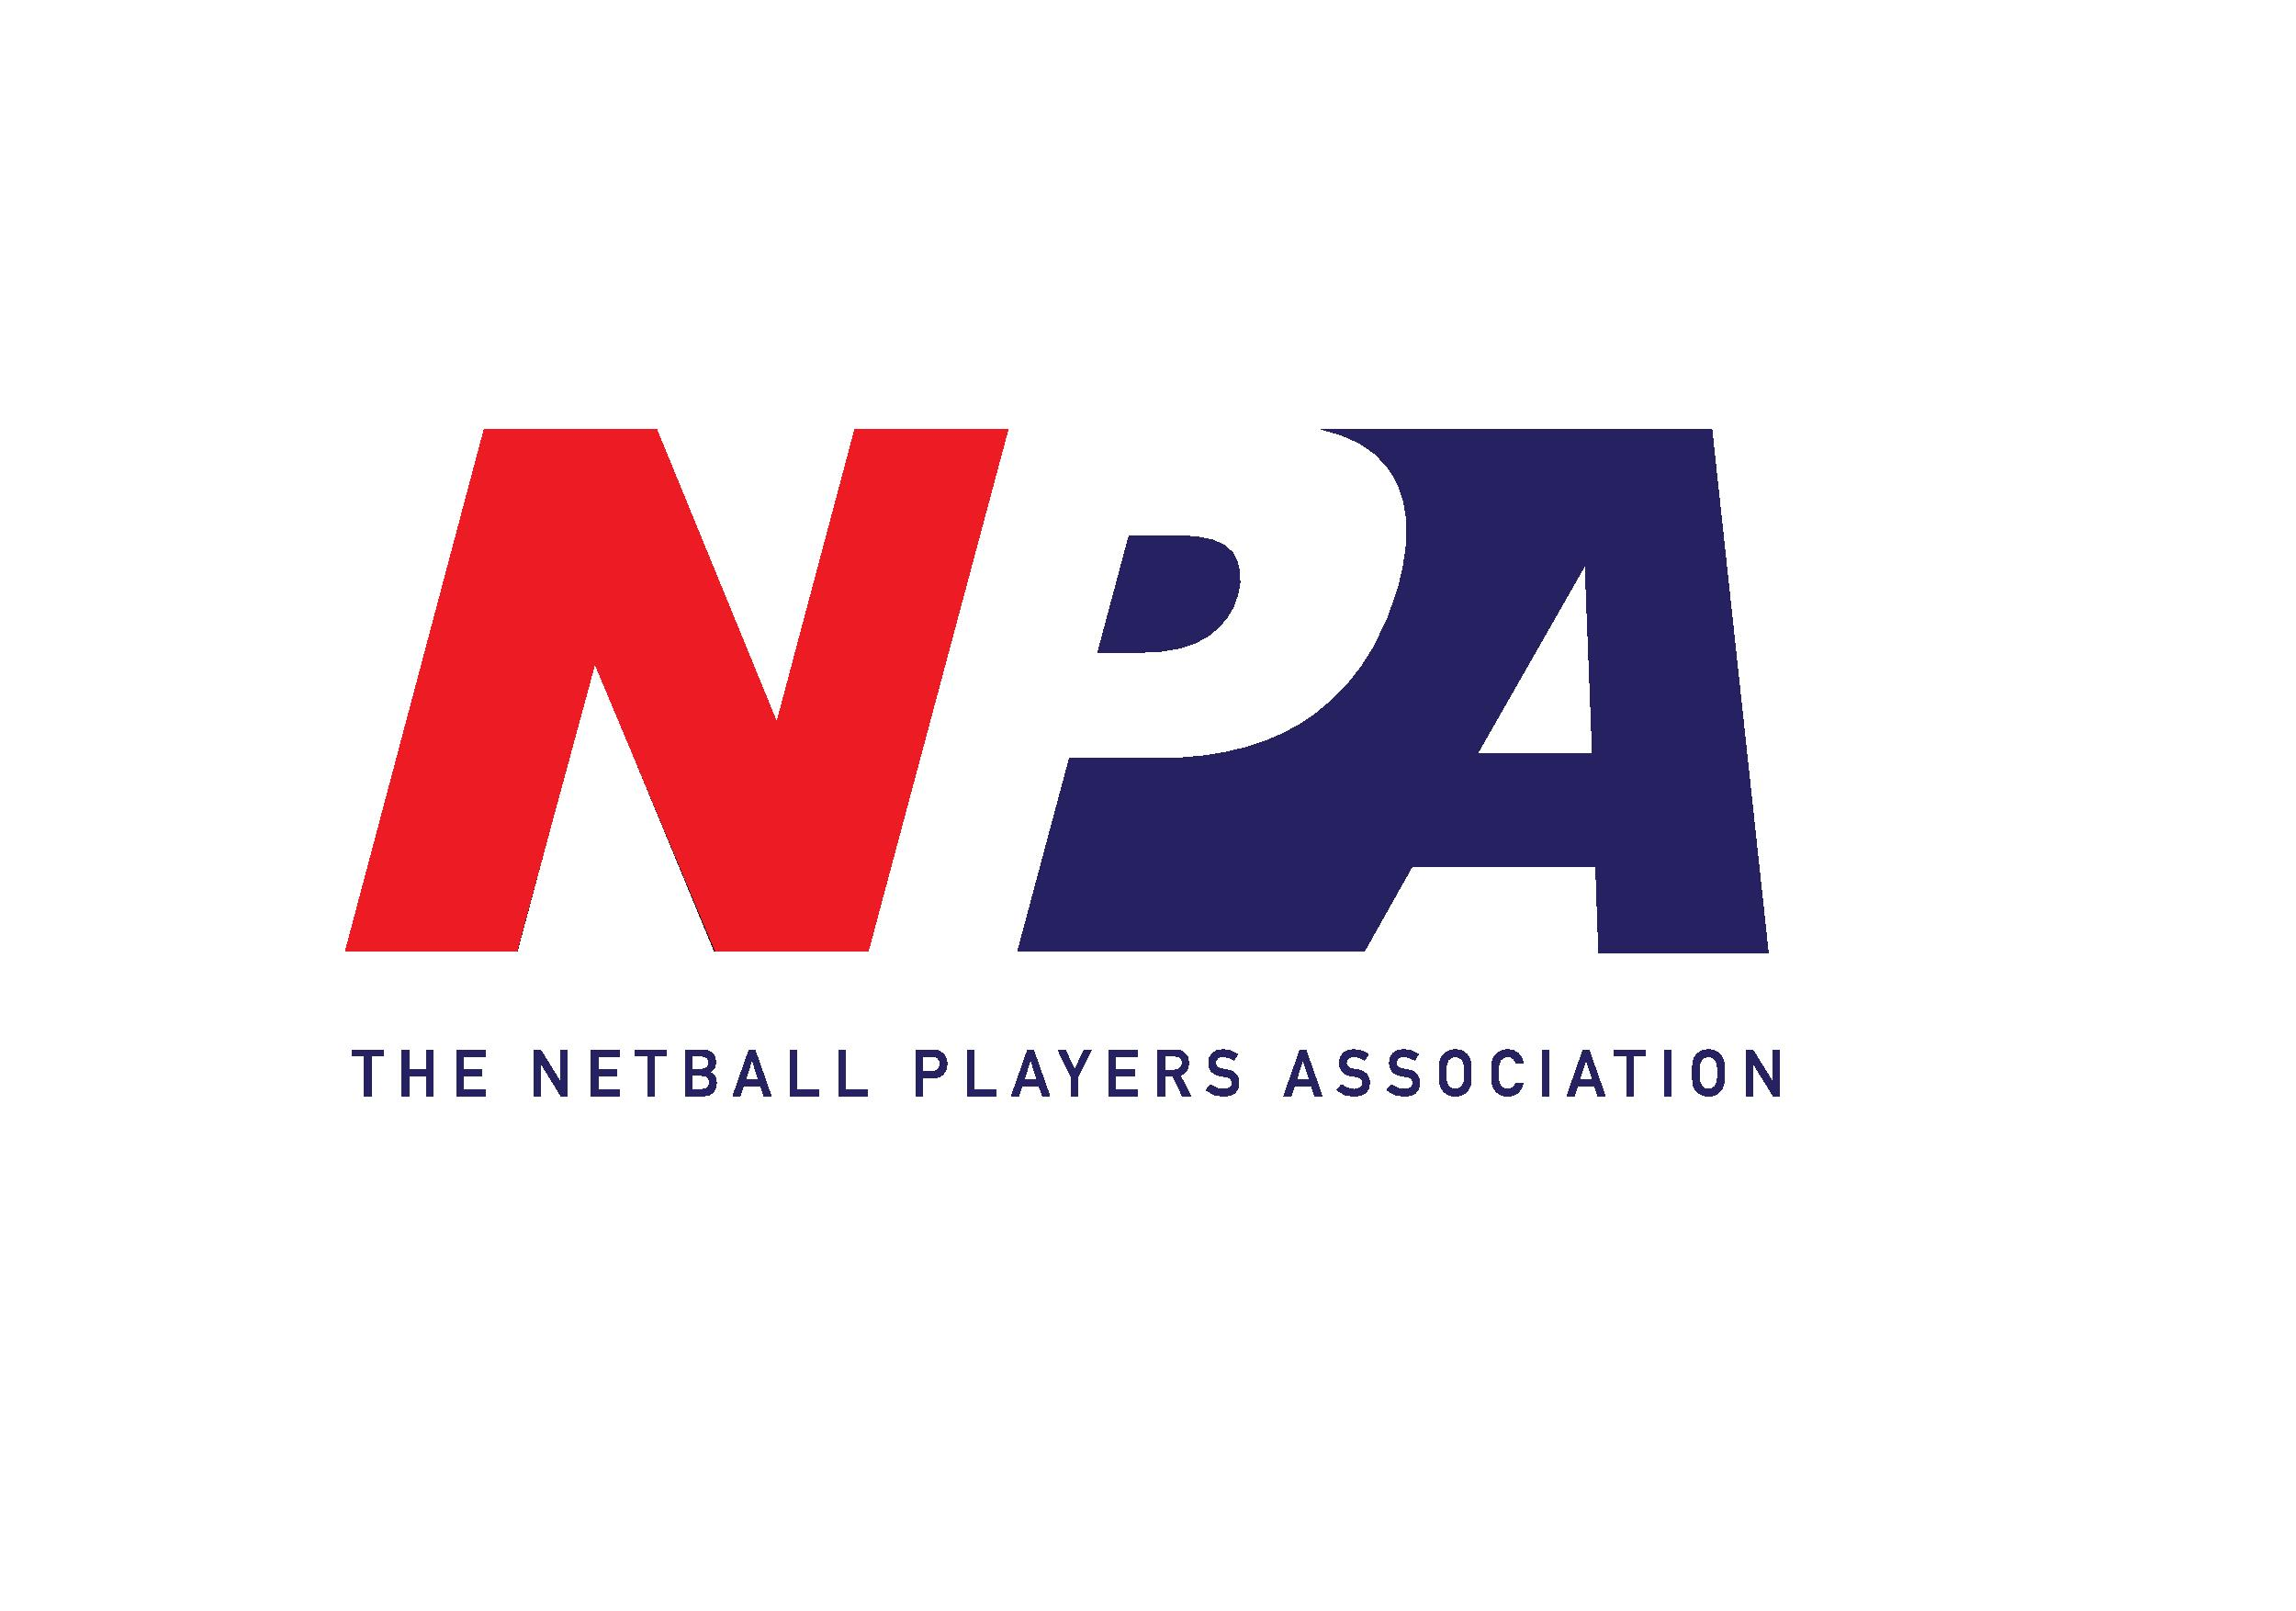 Netball Players Association